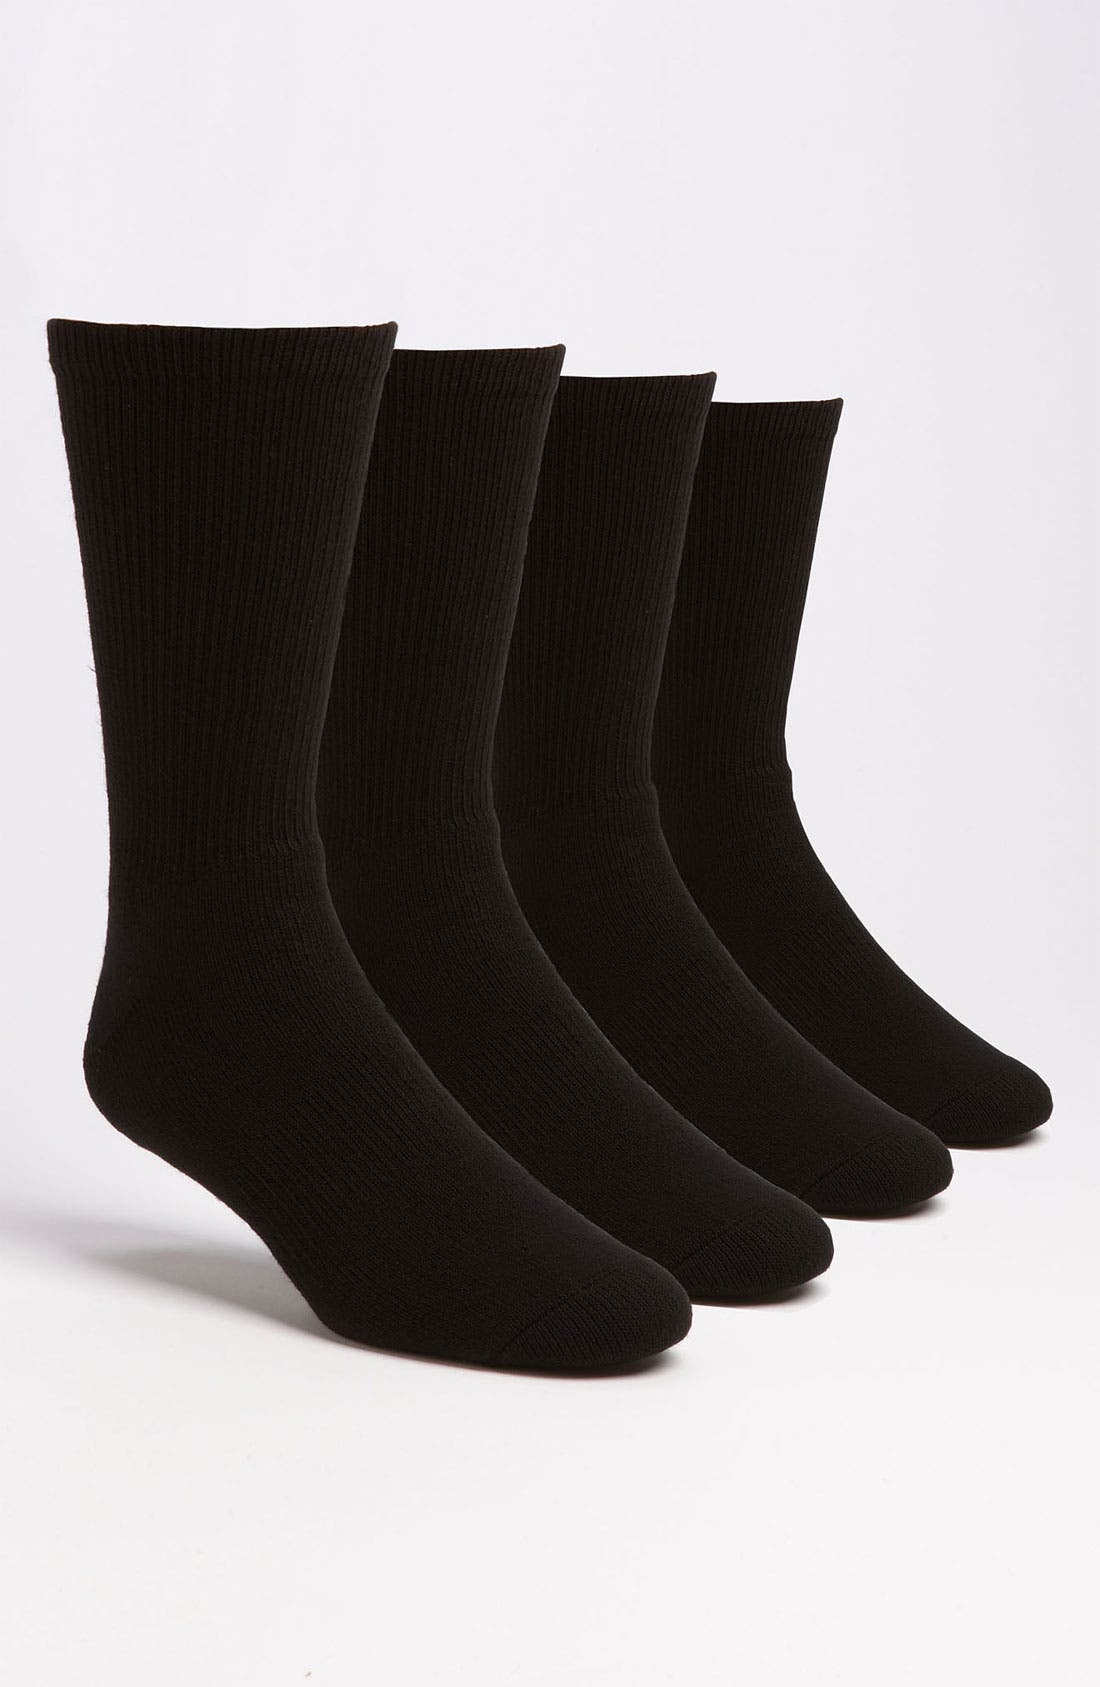 Alternate Image 1 Selected - Nordstrom Men's Shop Crew Socks (4-Pack)